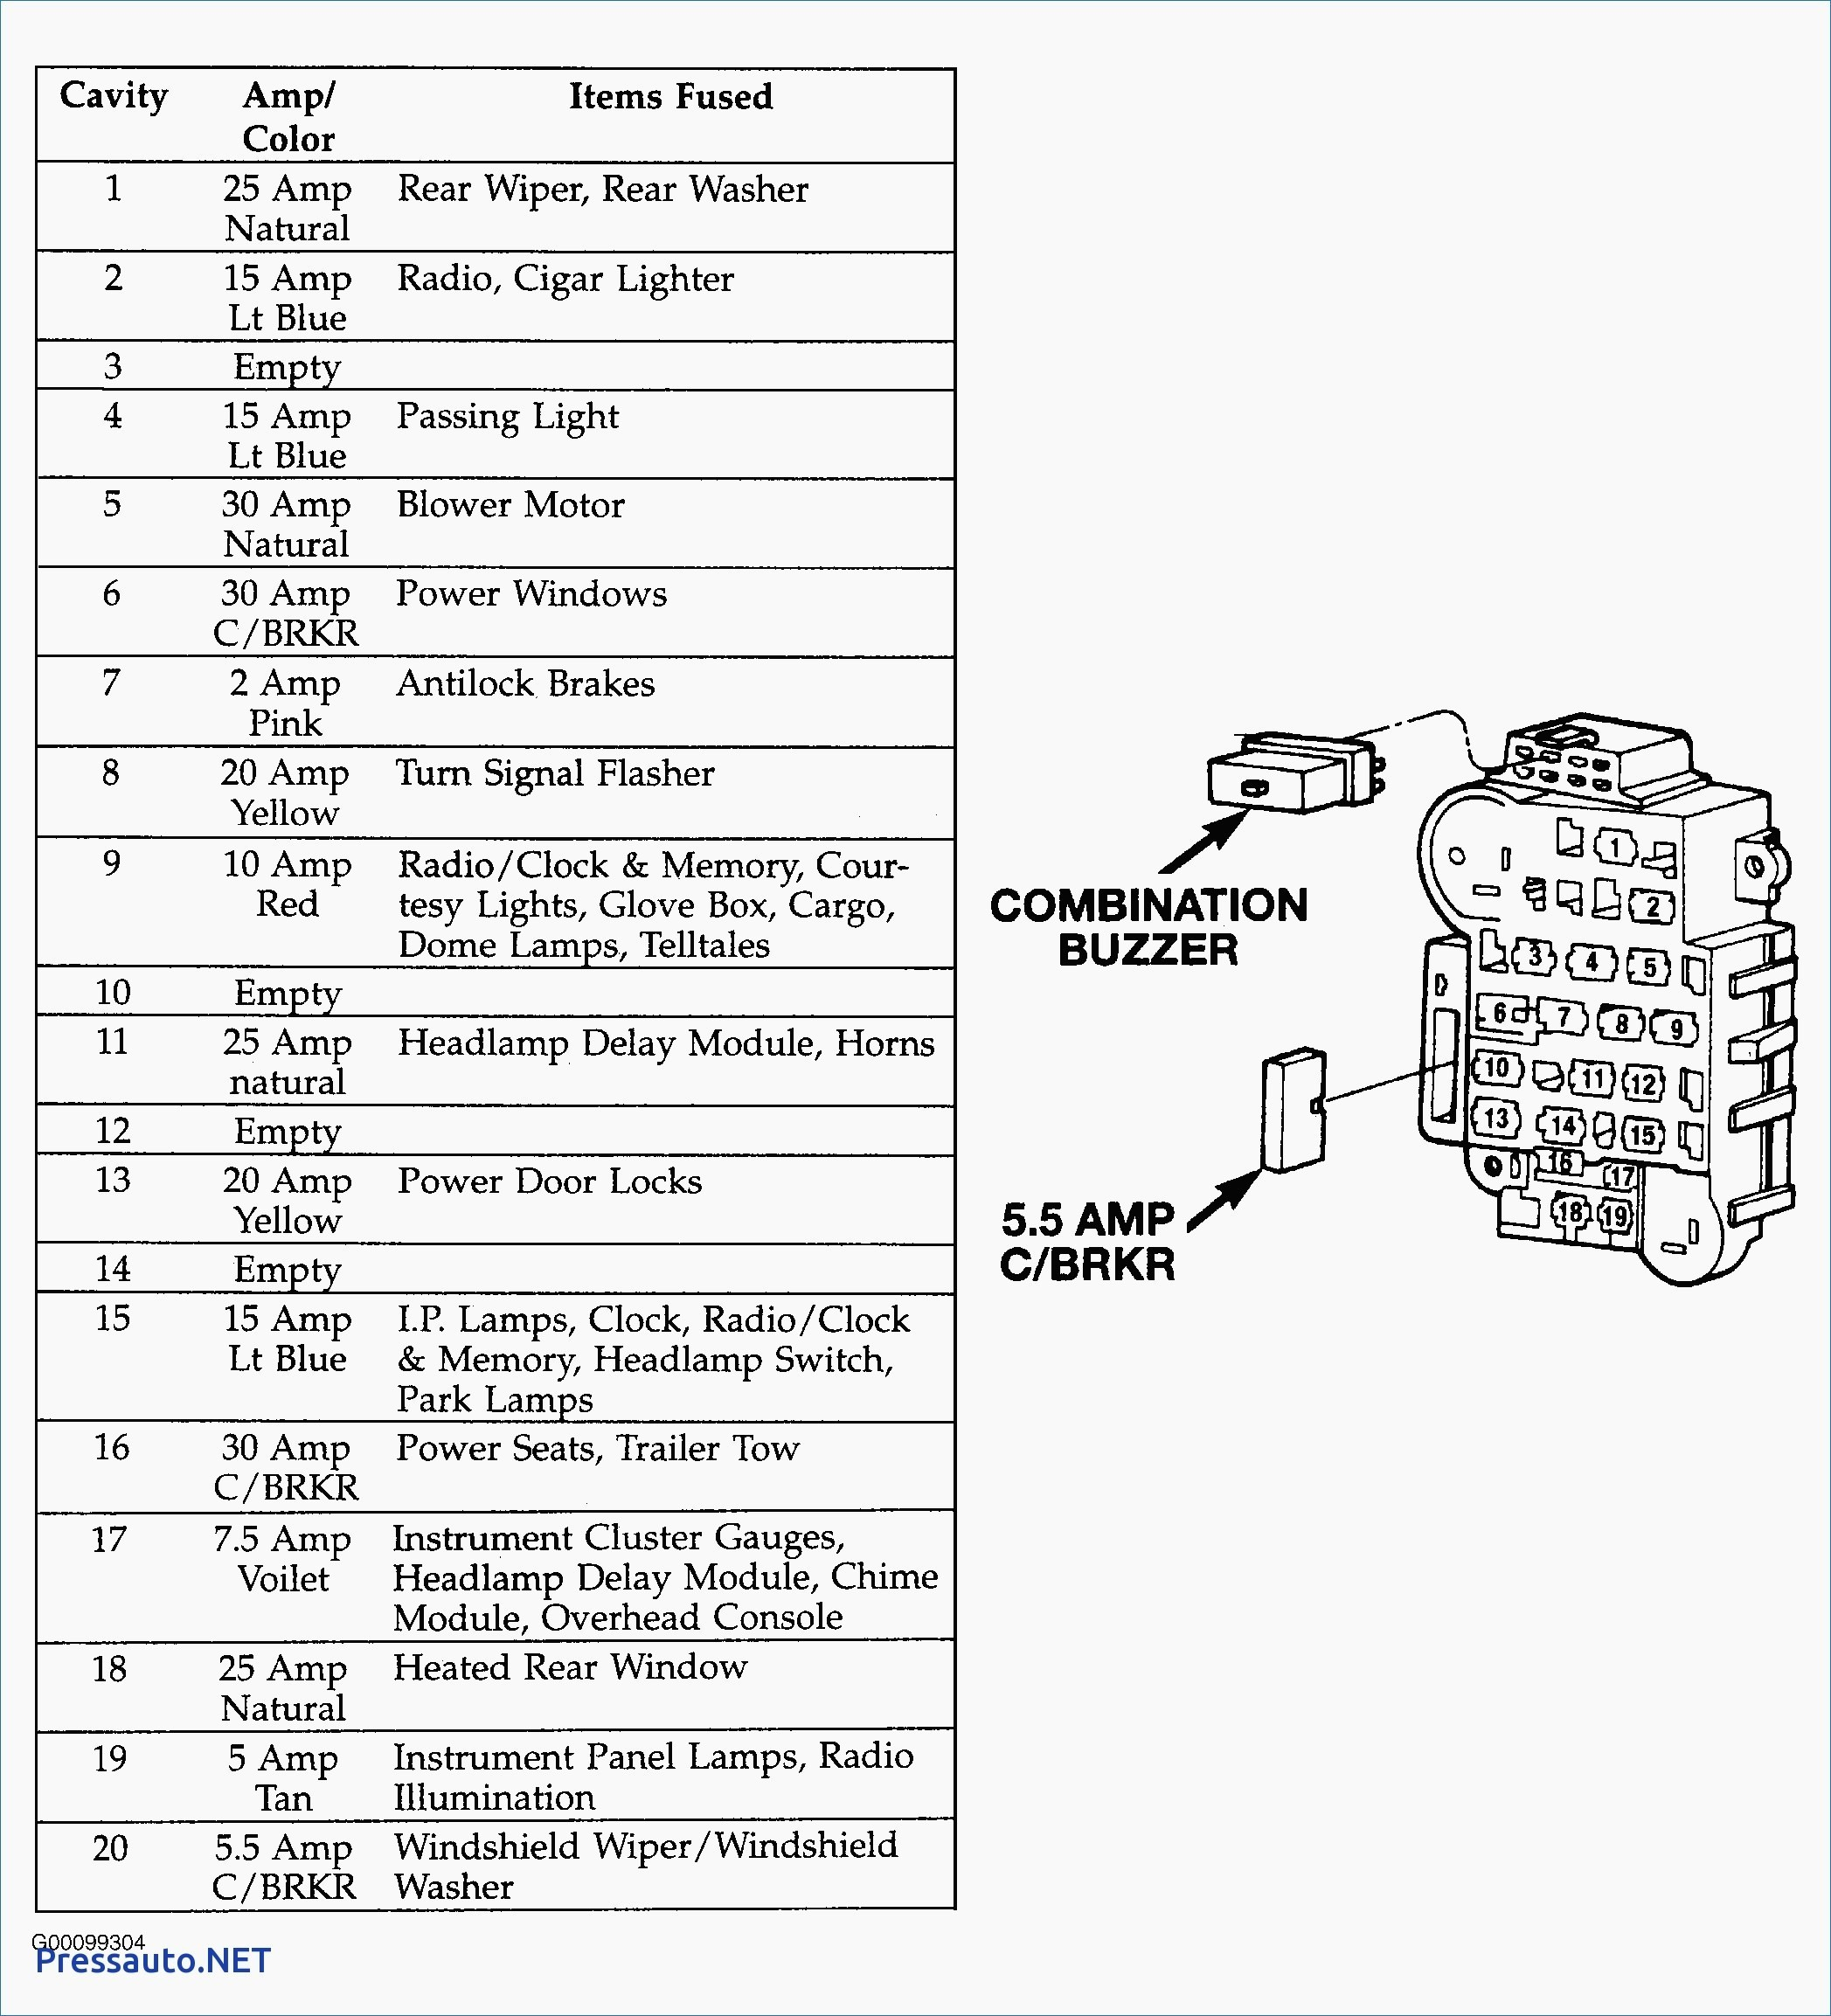 Trailer Wiring Diagram For Jeep Cherokee Save 1998 Jeep Cherokee Xj Wiring Diagram Best Chrysler Radio Wiring